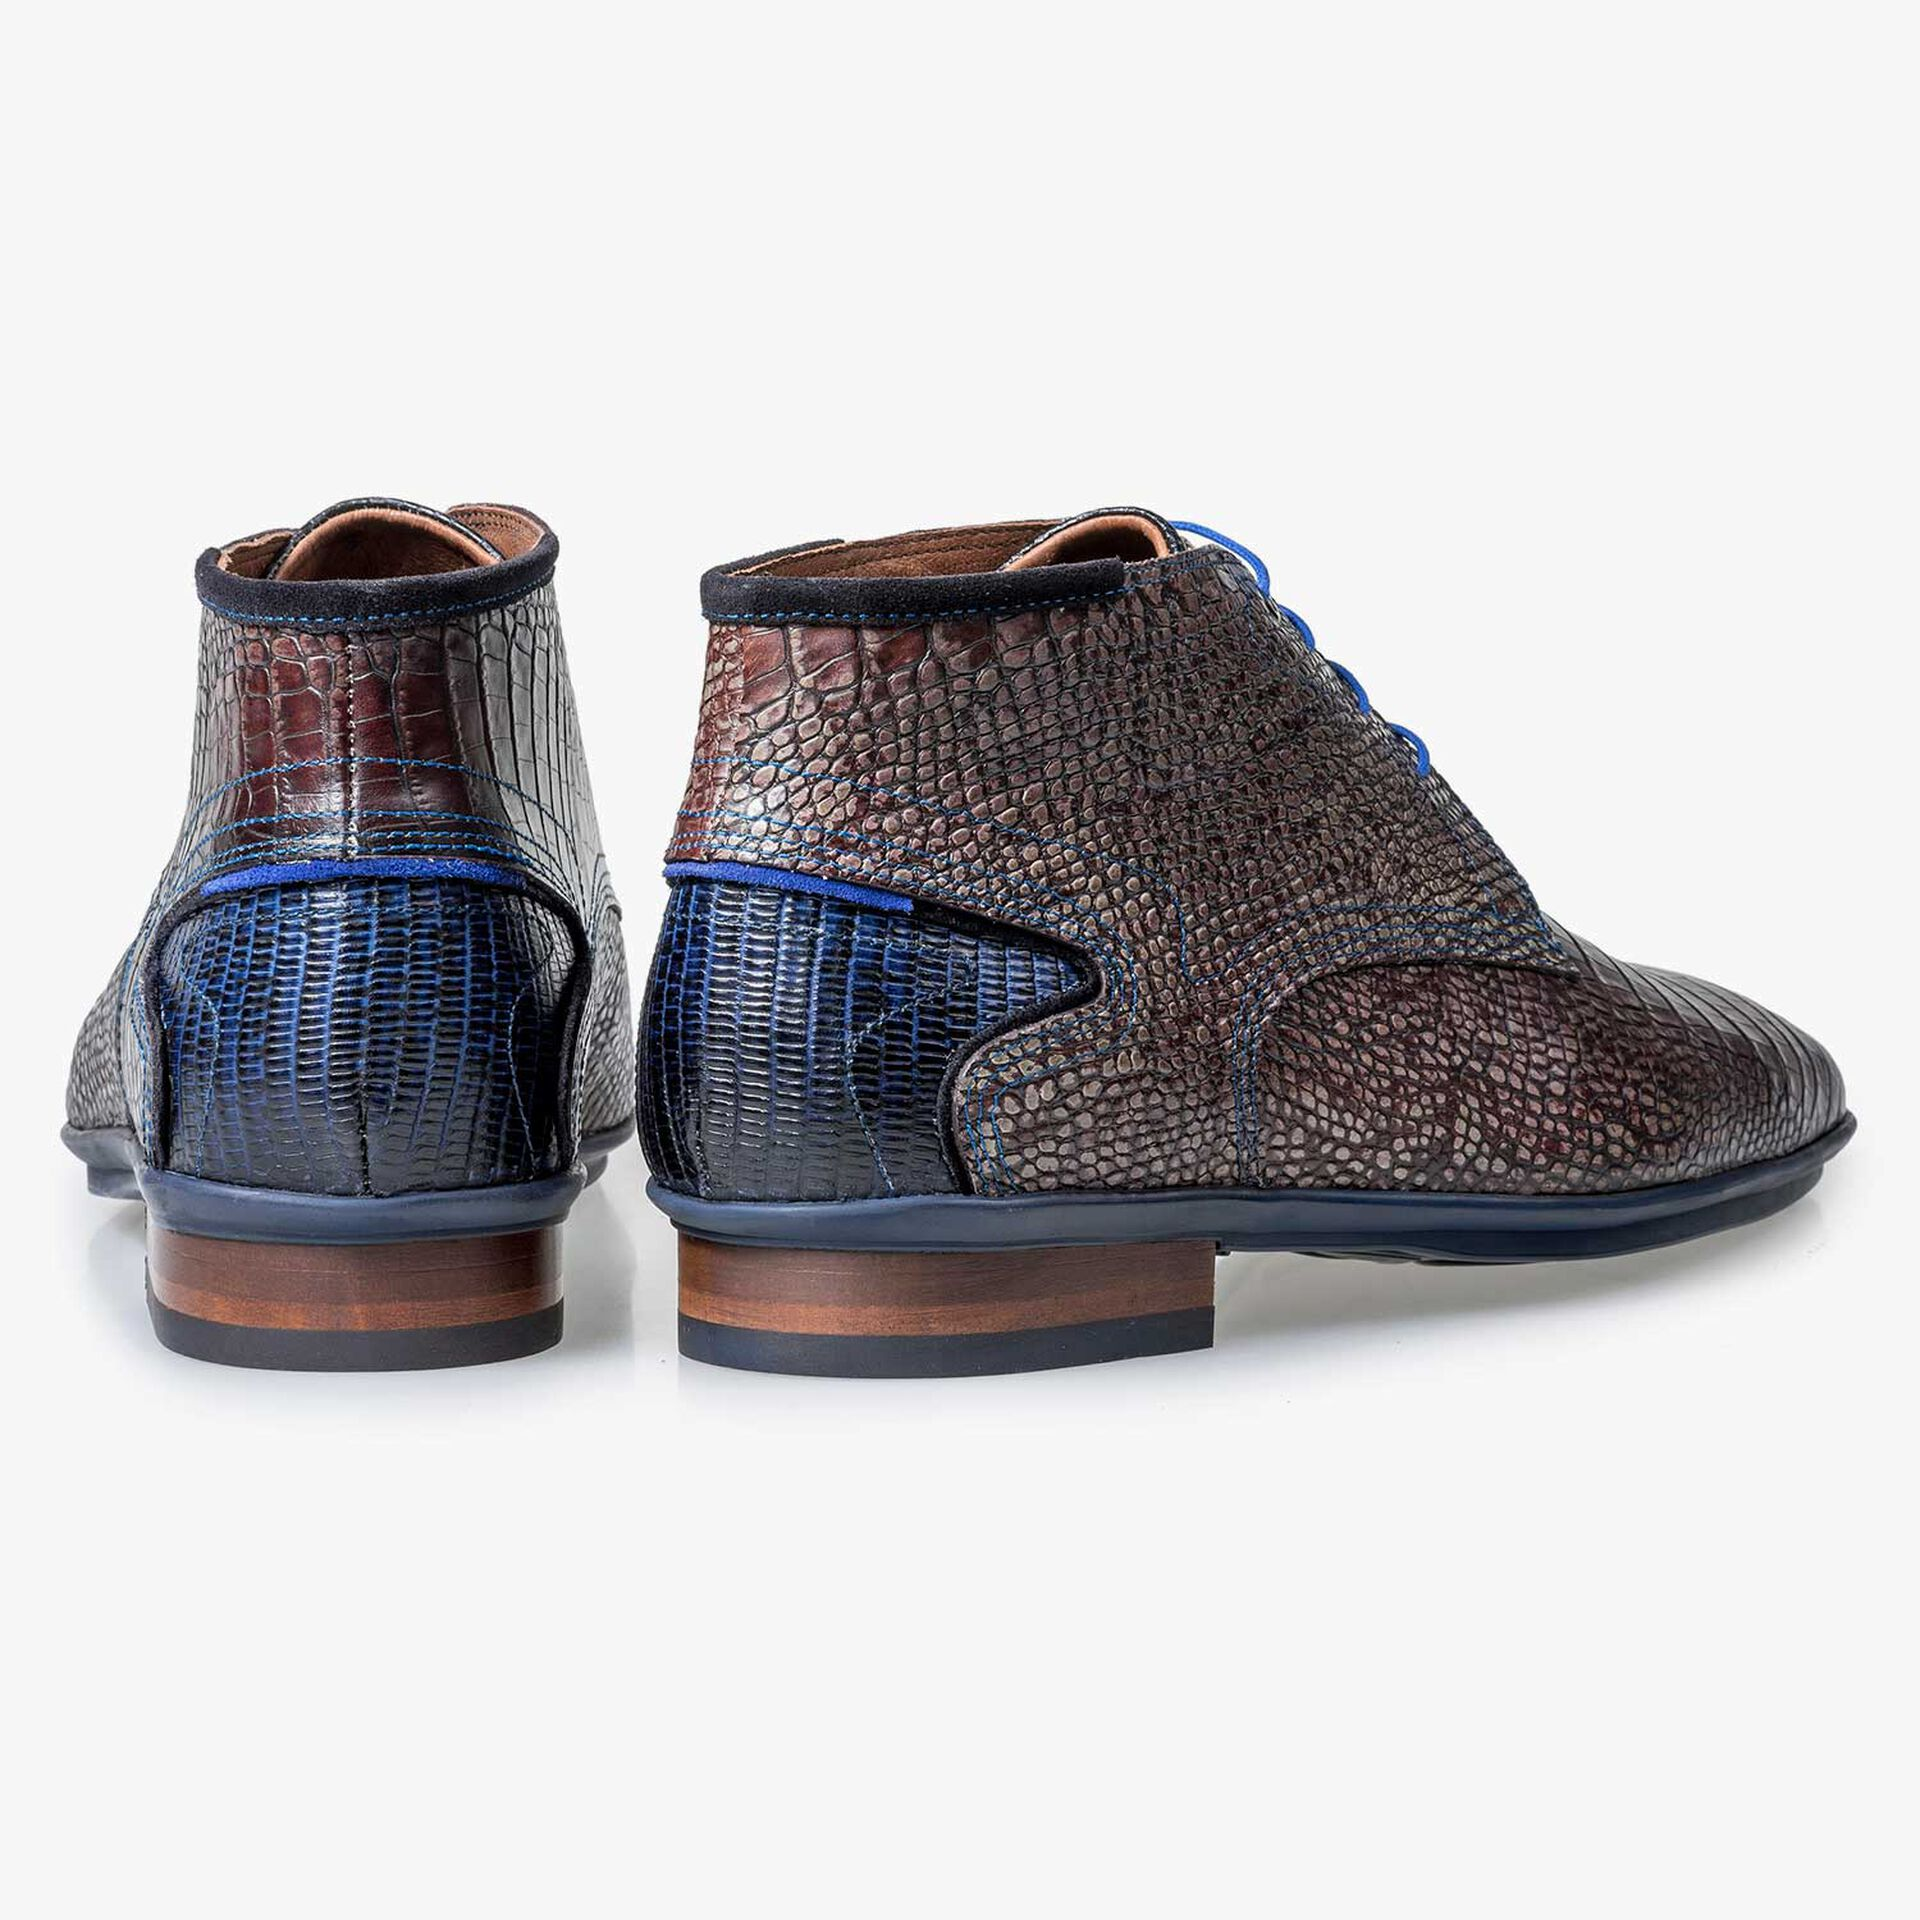 Dark brown calf leather lace boot with croco print